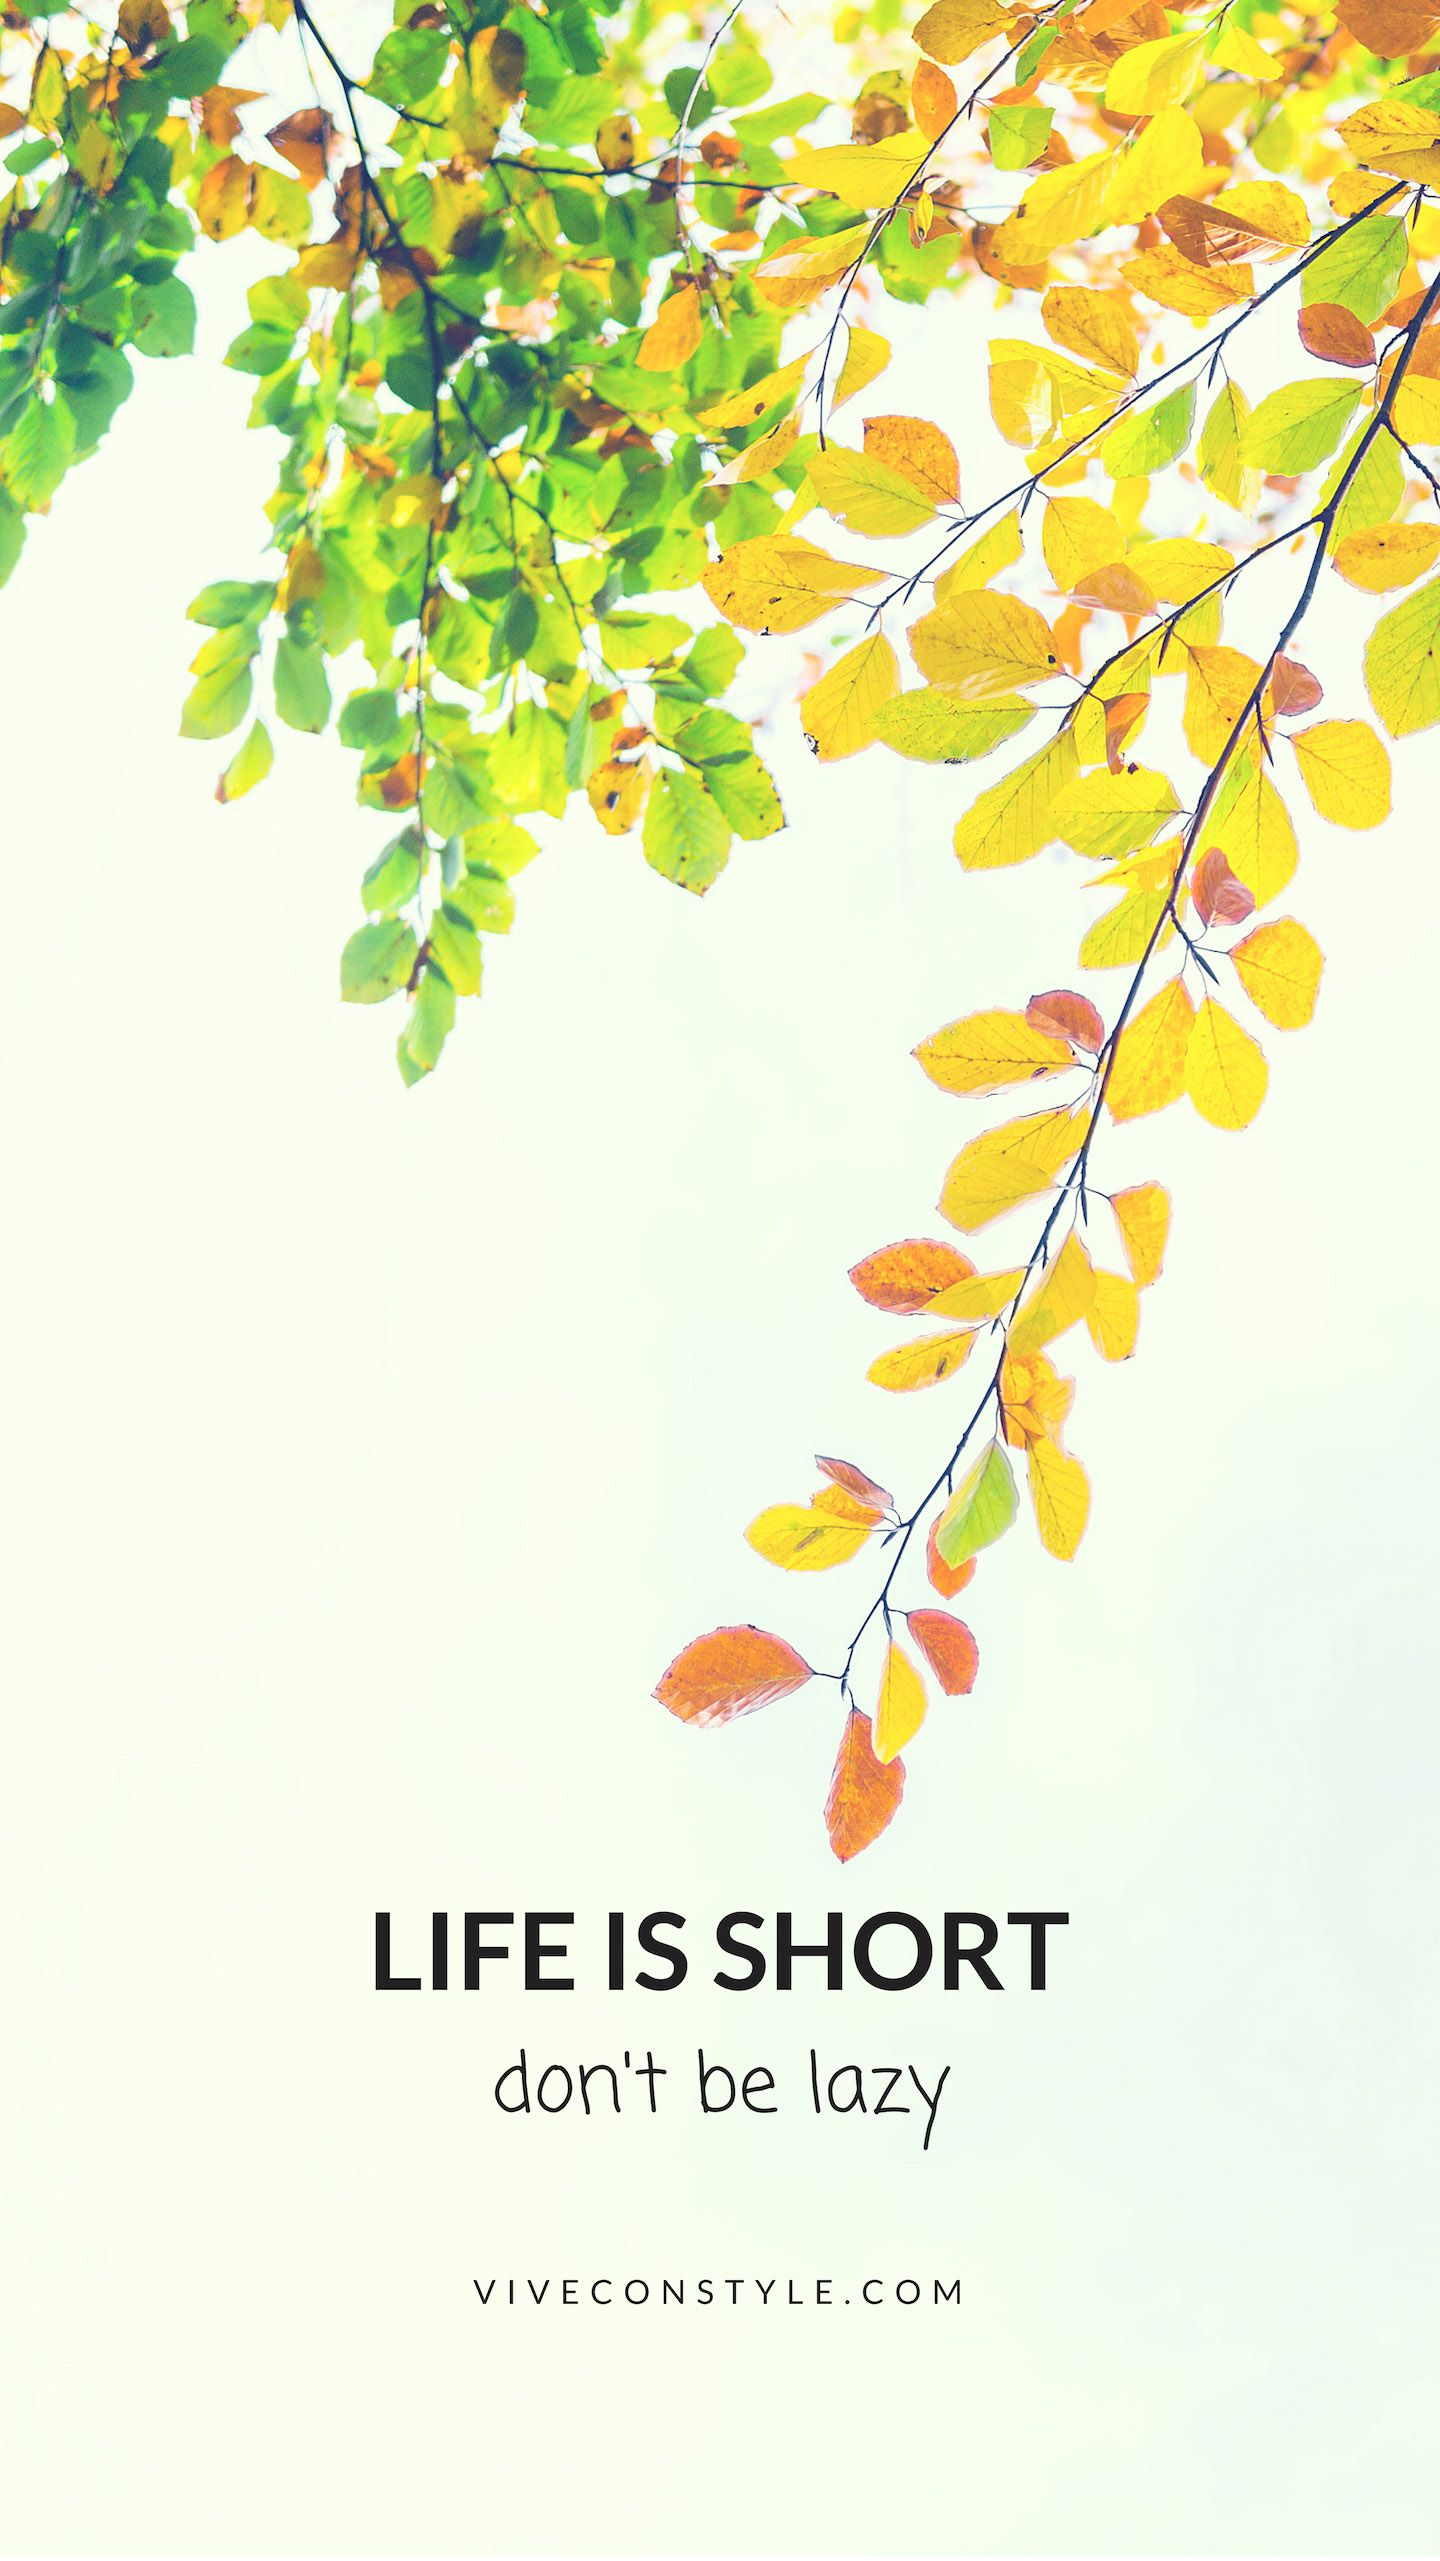 Life Is Short Don T Be Lazy Quote Mobile Wallpaper Vive Con Style Inspirational Wallpapers Cute Mobile Wallpapers Wallpaper